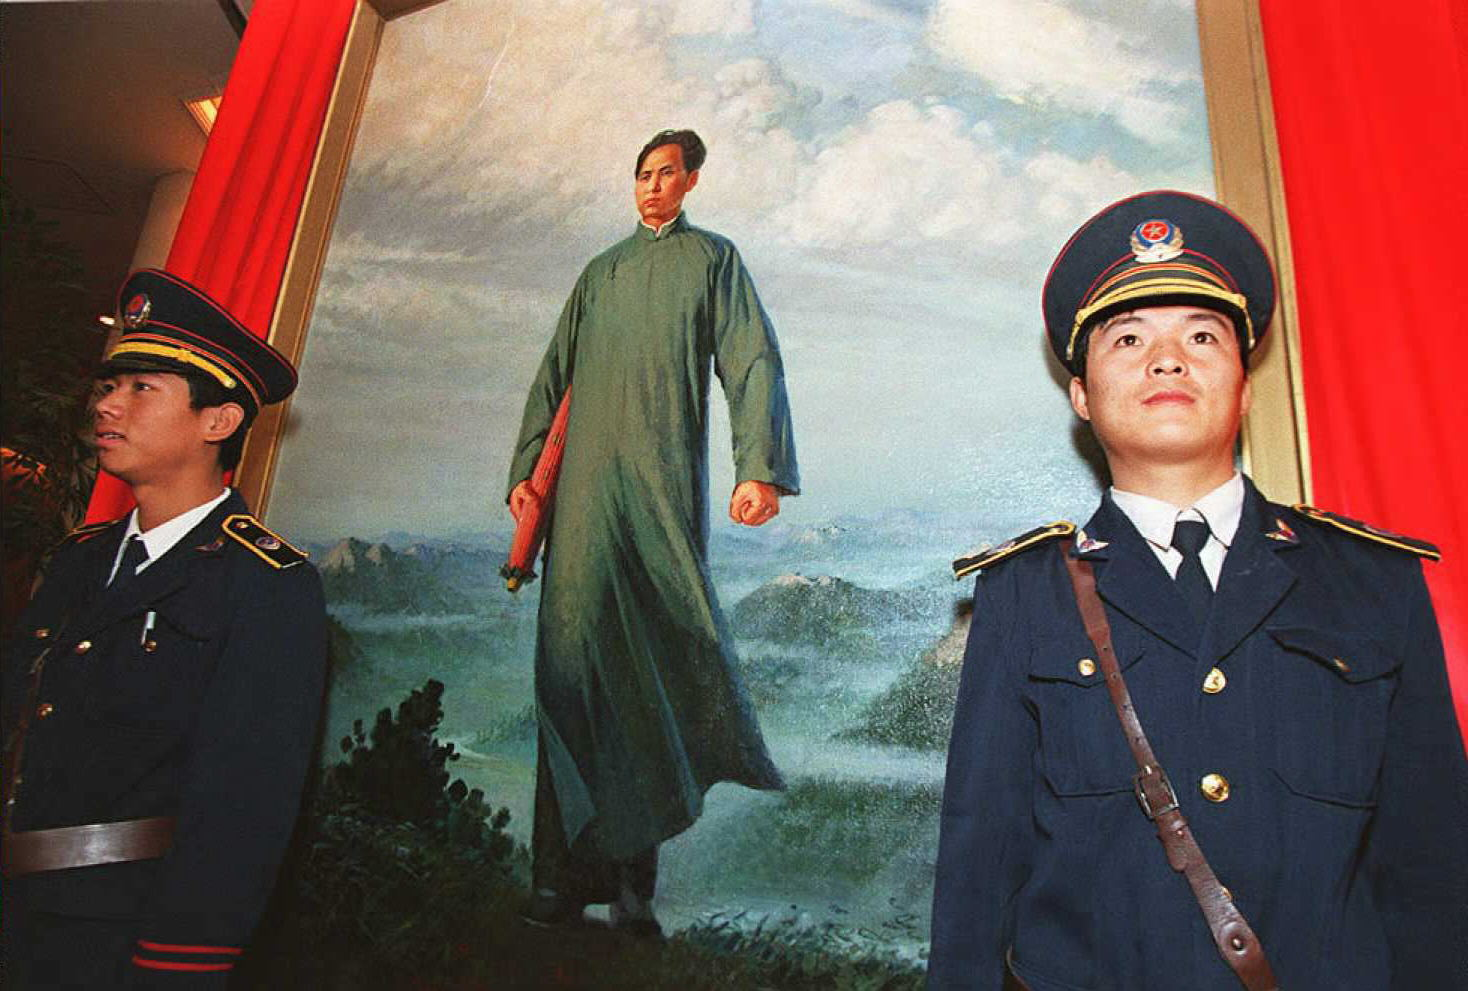 Security guards protect  the painting  Chairman Mao Goes to Anyuan  by Liu Chunhua, which was sold at an auction in Beijing 07 October, 1995 for $728,900 — at the time, the highest price ever offered for an auctioned Chinese oil painting.  The painting, which depicts Mao in his late 20s on a trip to initiate a strike in the coal mining town of Anyuan, pushed the personality cult of Mao to a climax when it was issued during the Cultural Revolution.